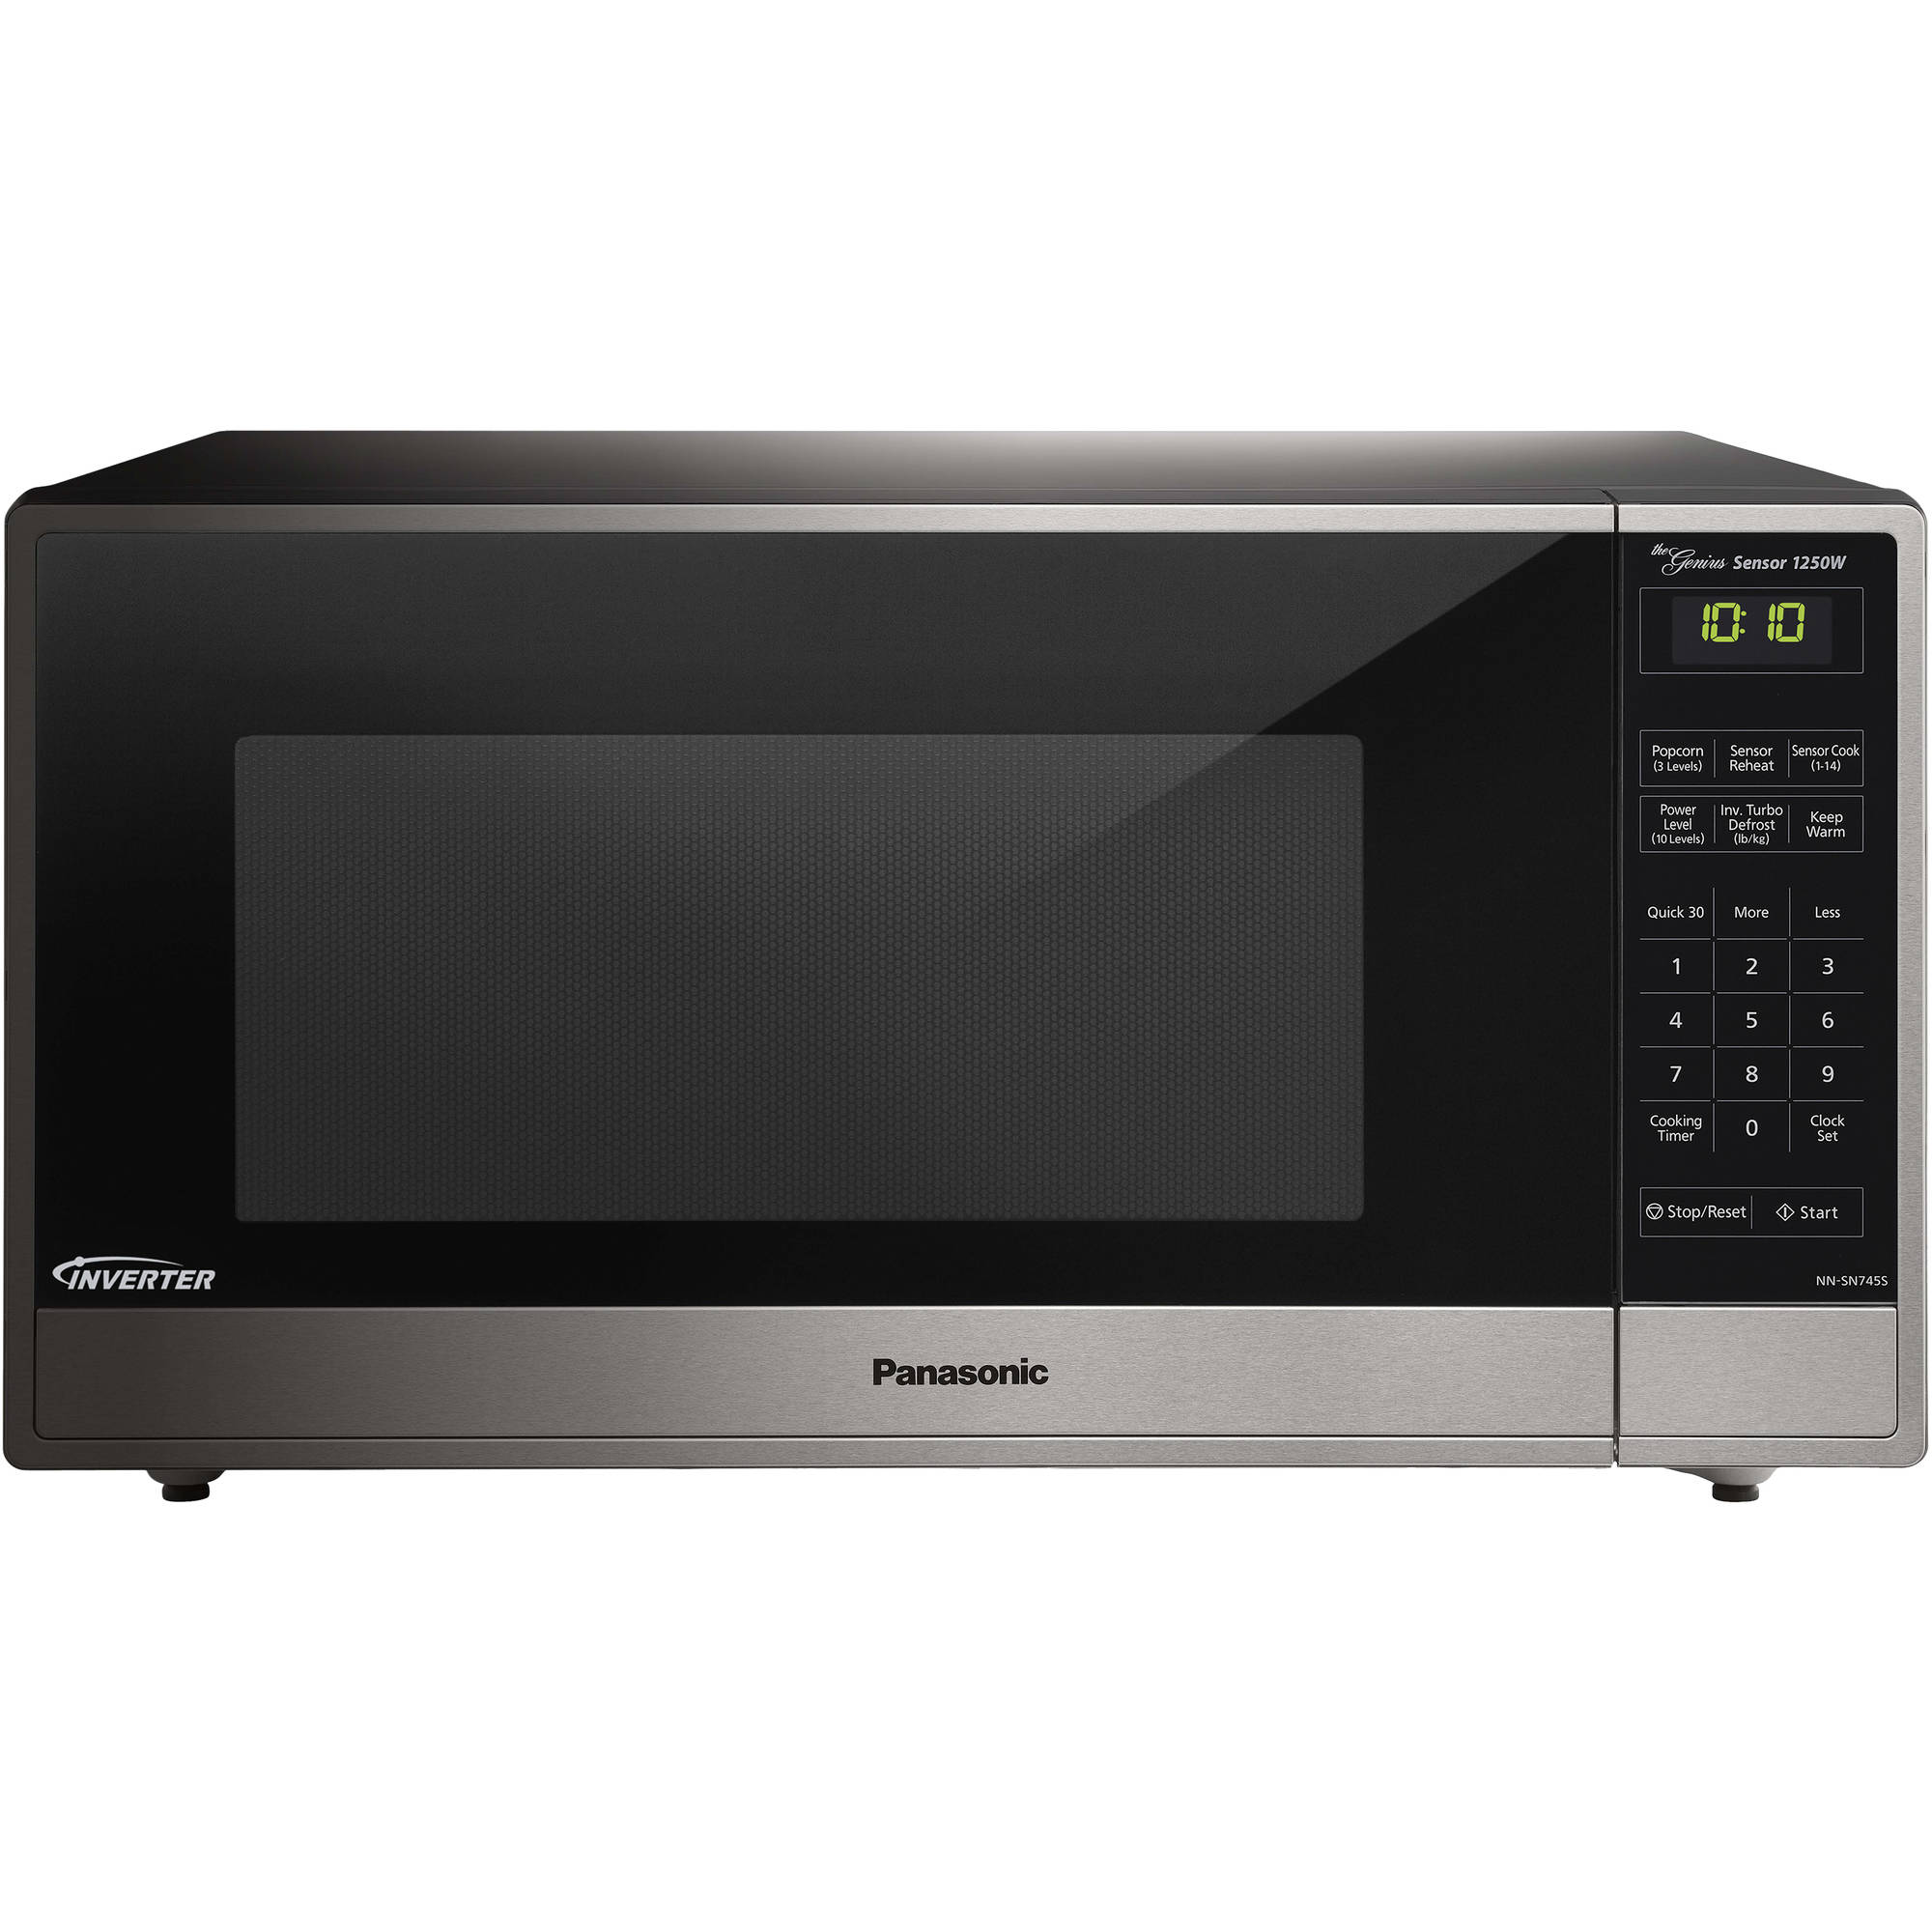 panasonic 16 cu ft microwave oven with inverter technology silver - Panasonic Microwave Inverter